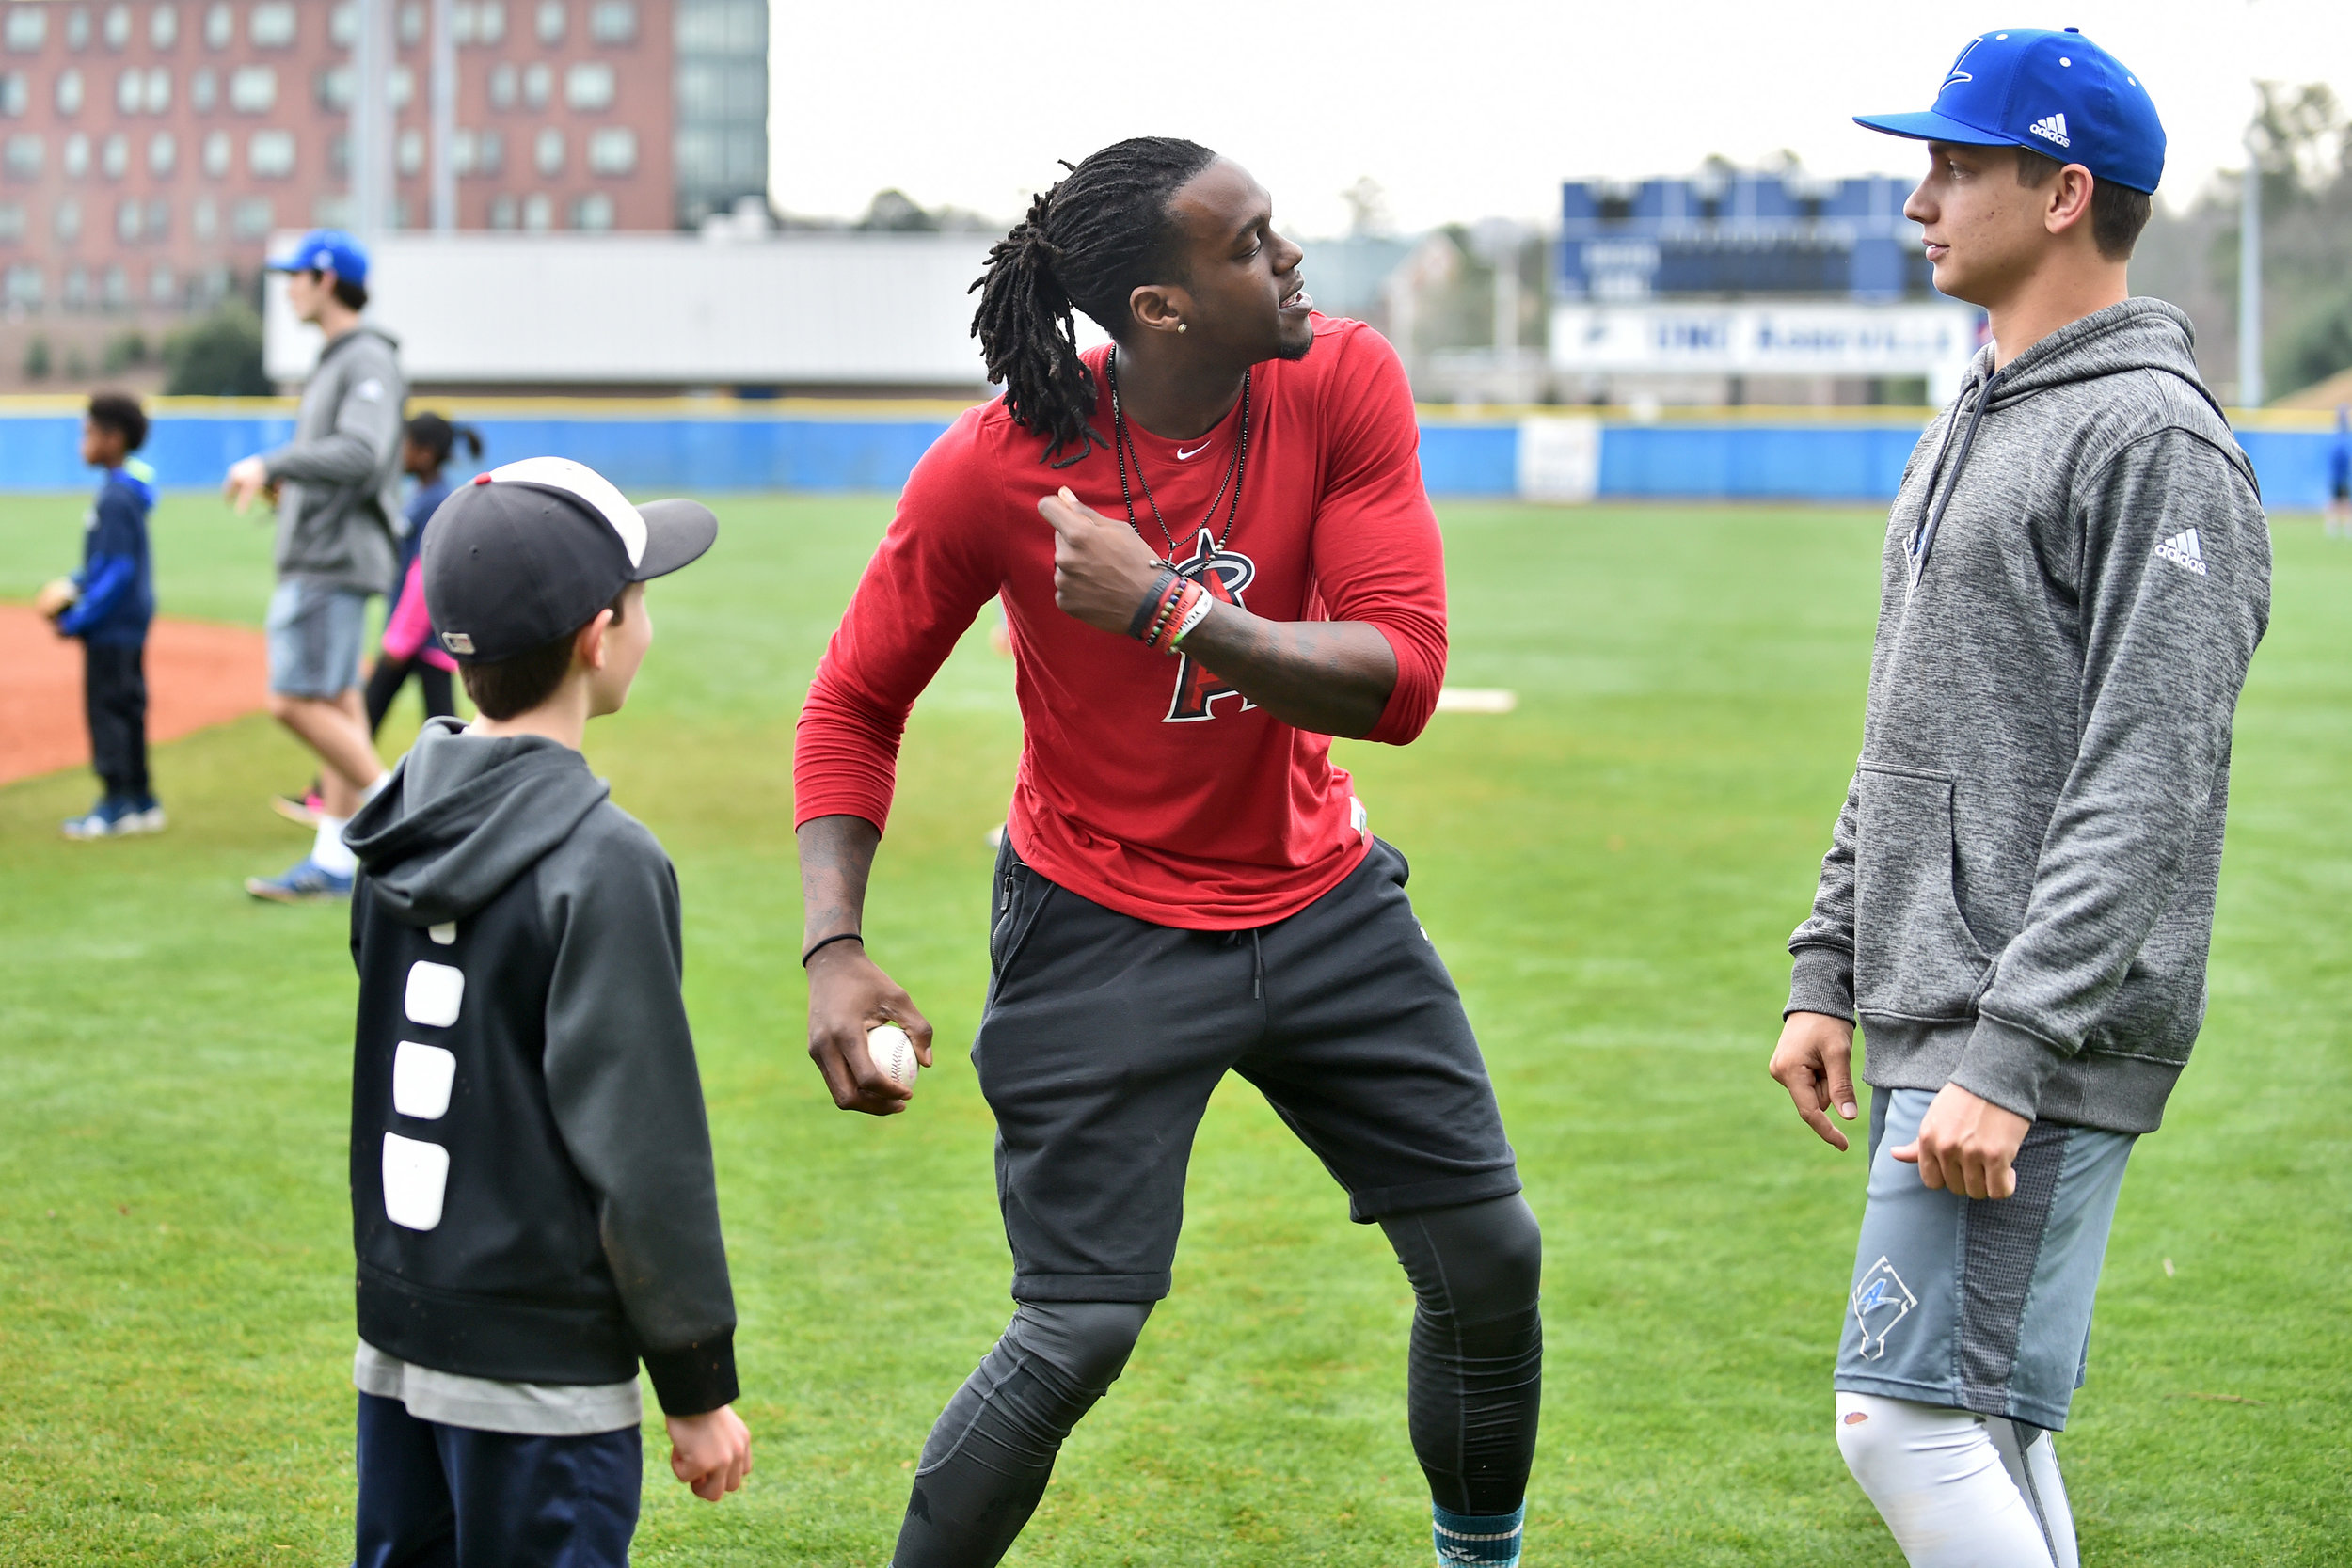 Maybin Mission Youth Camp January 2017   Asheville, North Carolina     Cameron Maybin, in partnership with UNC Asheville, hosted a skills based youth camp for local little league players in Asheville, NC.   LEARN MORE